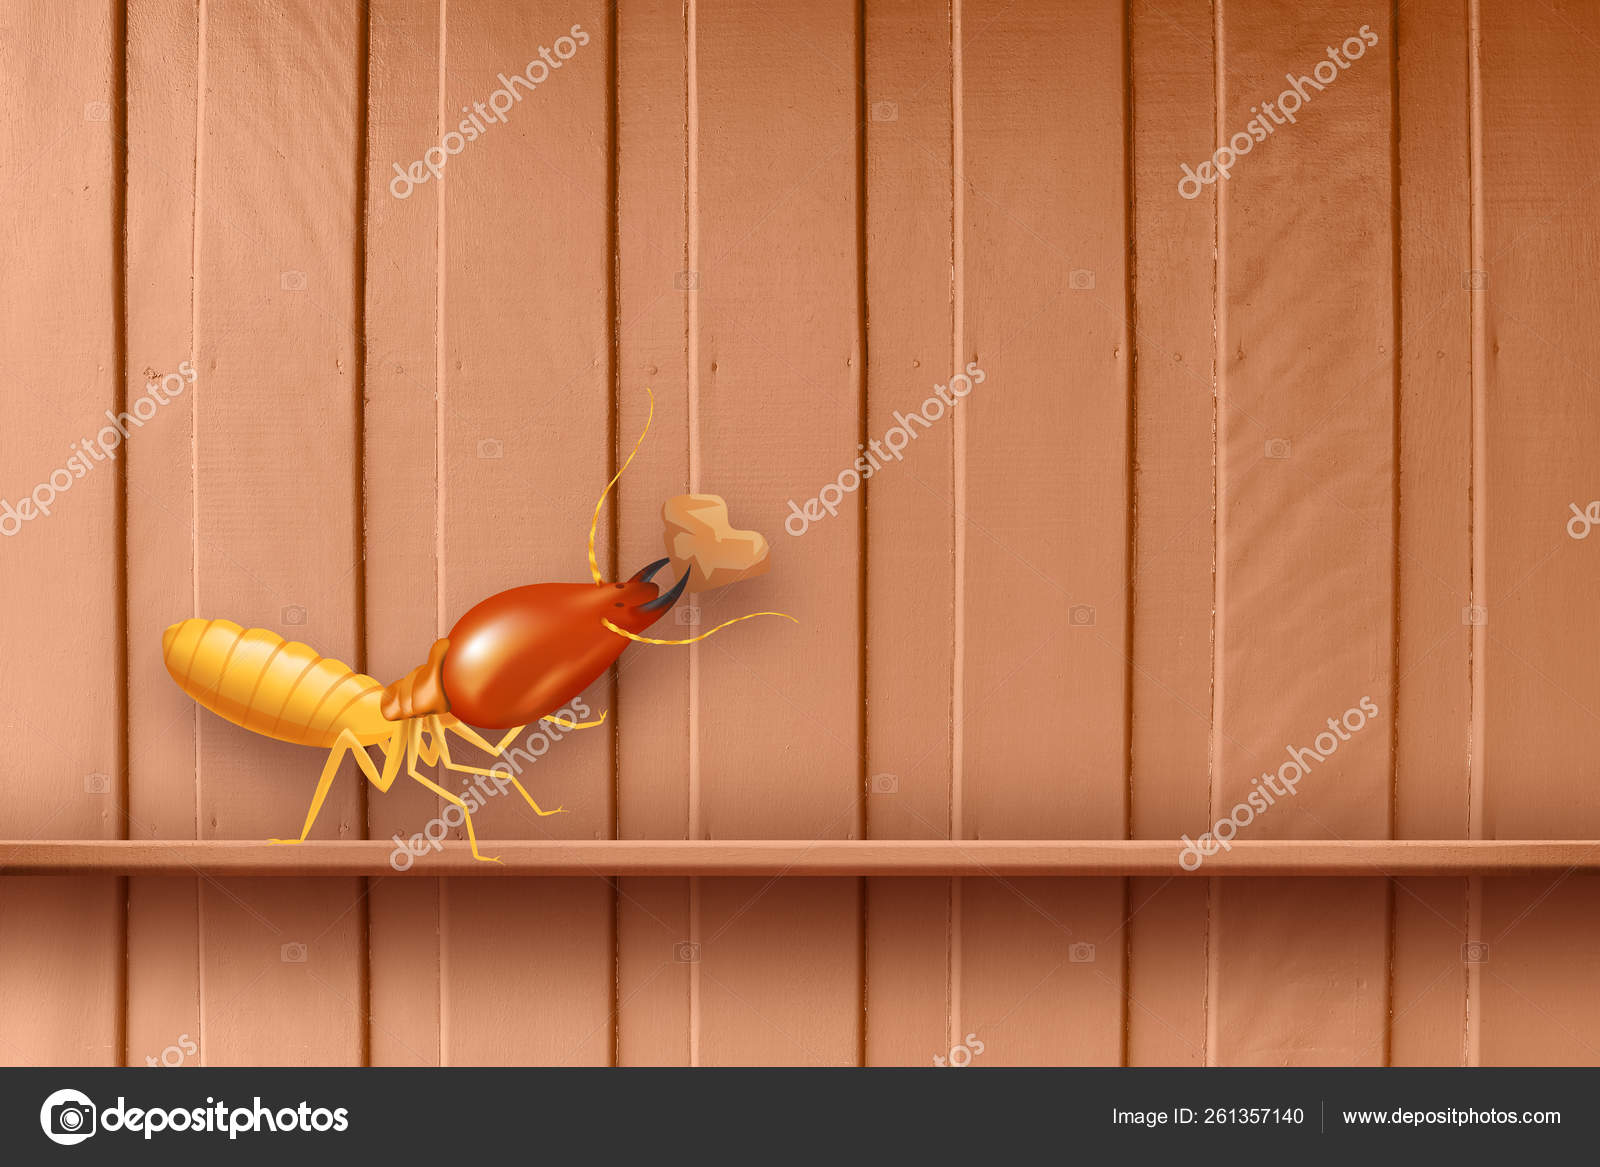 Termite Termites At Wooden Wall Termites And Wood Decay Texture Wood With Nest Termite Or White Ant Background Damaged With Wooden Eaten By Termite Or White Ants Stock Photo C Cgdeaw 261357140